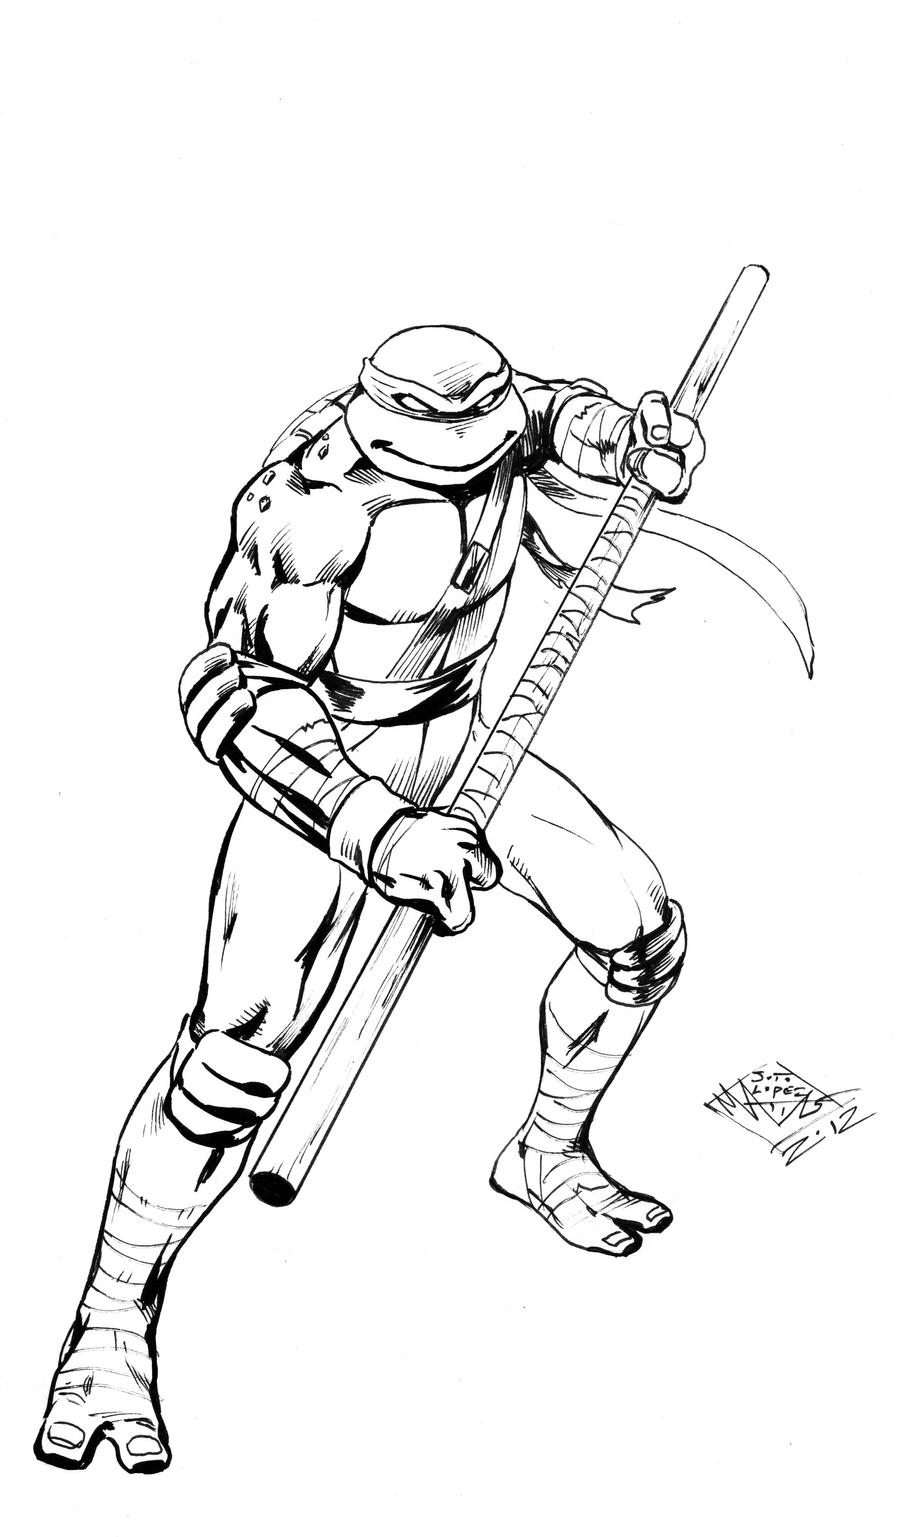 TMNT Donatello by MatiasSoto on DeviantArt